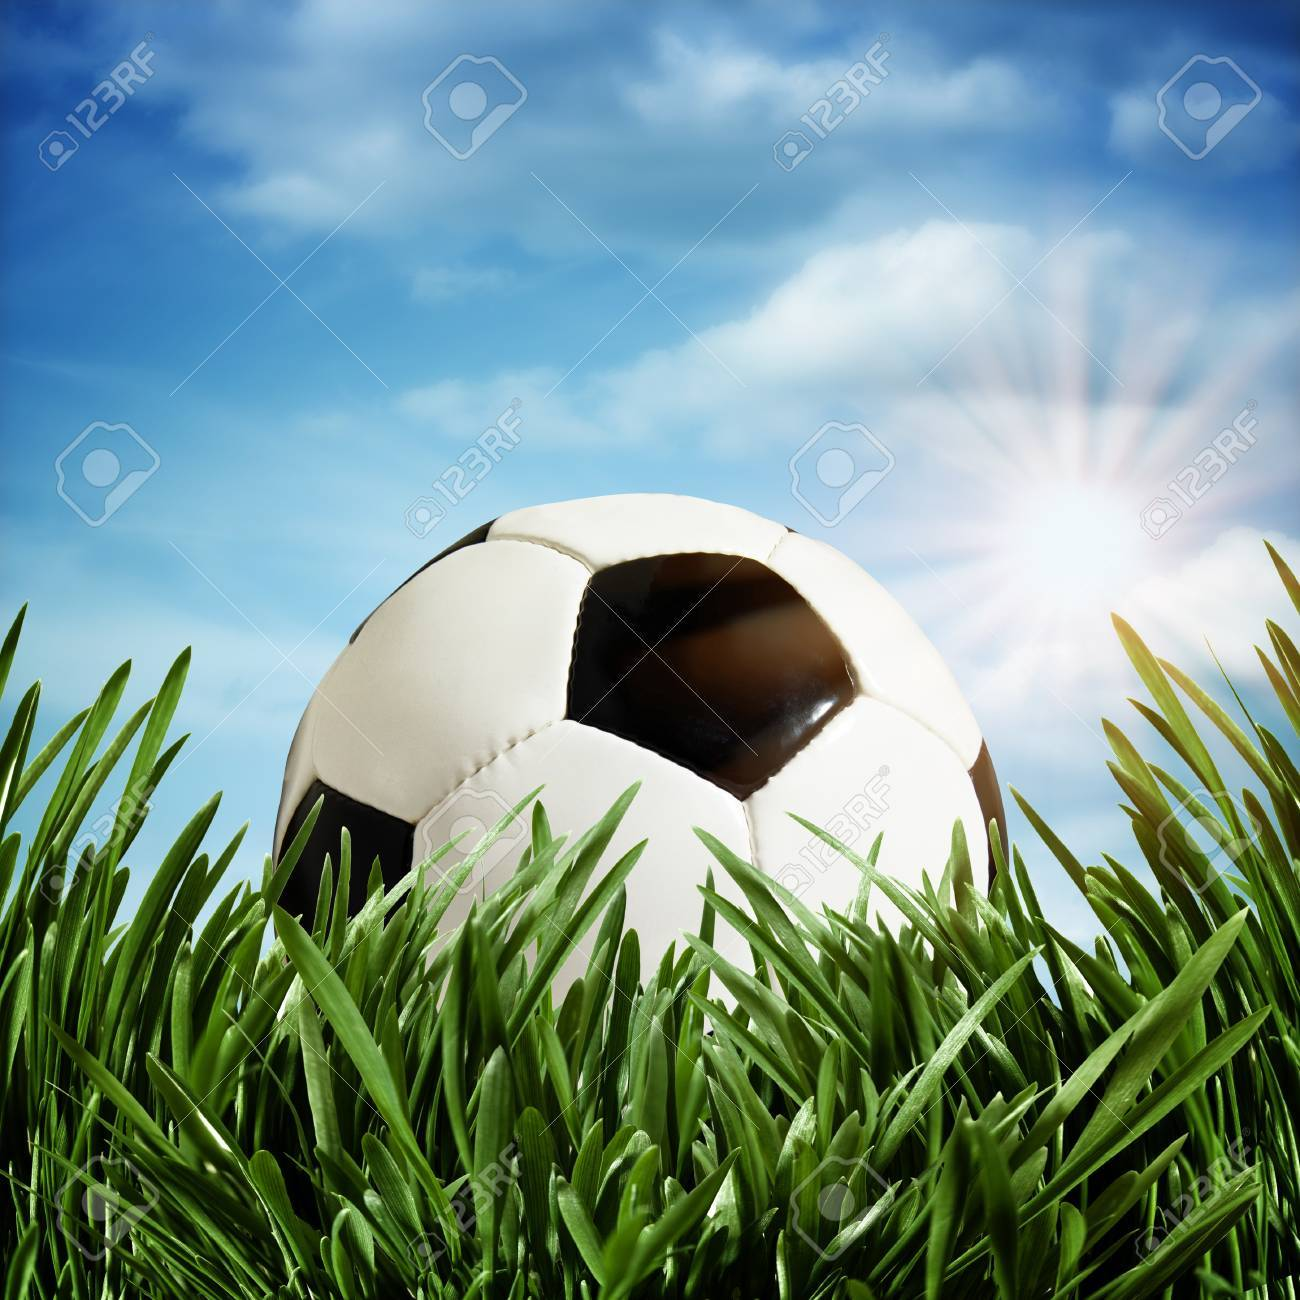 Abstract football or soccer backgrounds Stock Photo - 14889649